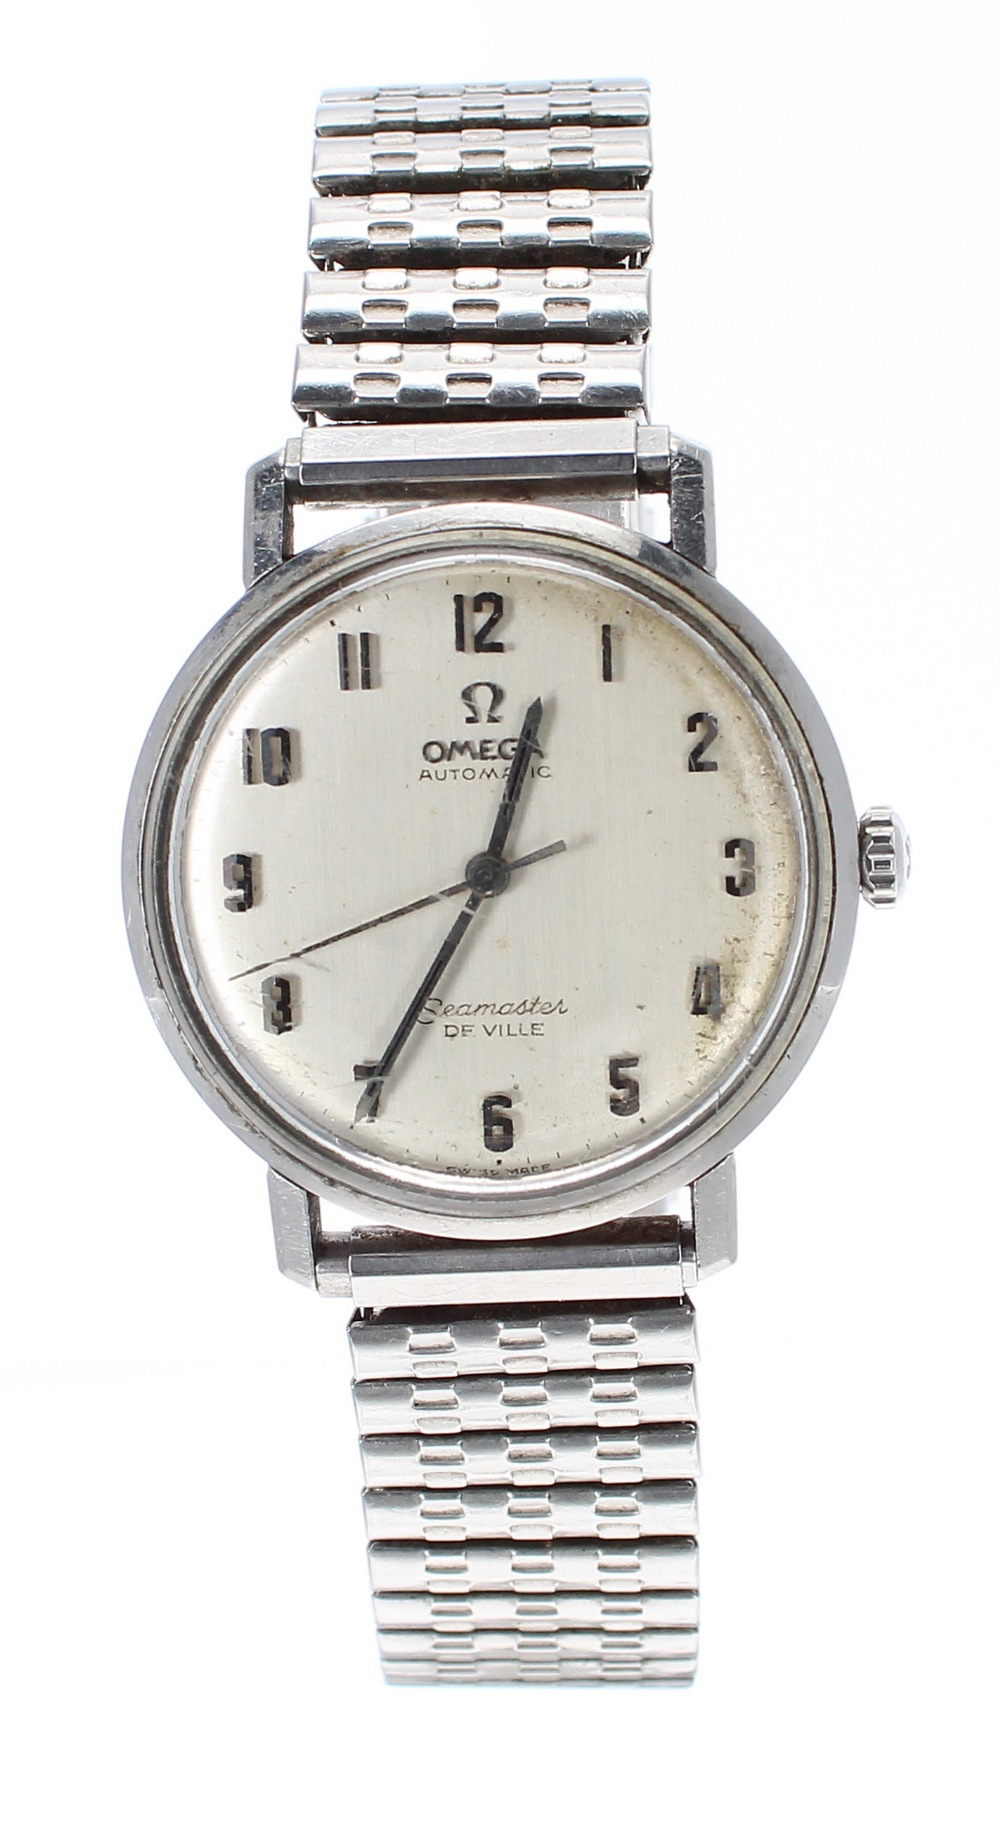 Lot 14 - Omega Seamaster DeVille automatic stainless steel gentleman's bracelet watch, circular silvered dial